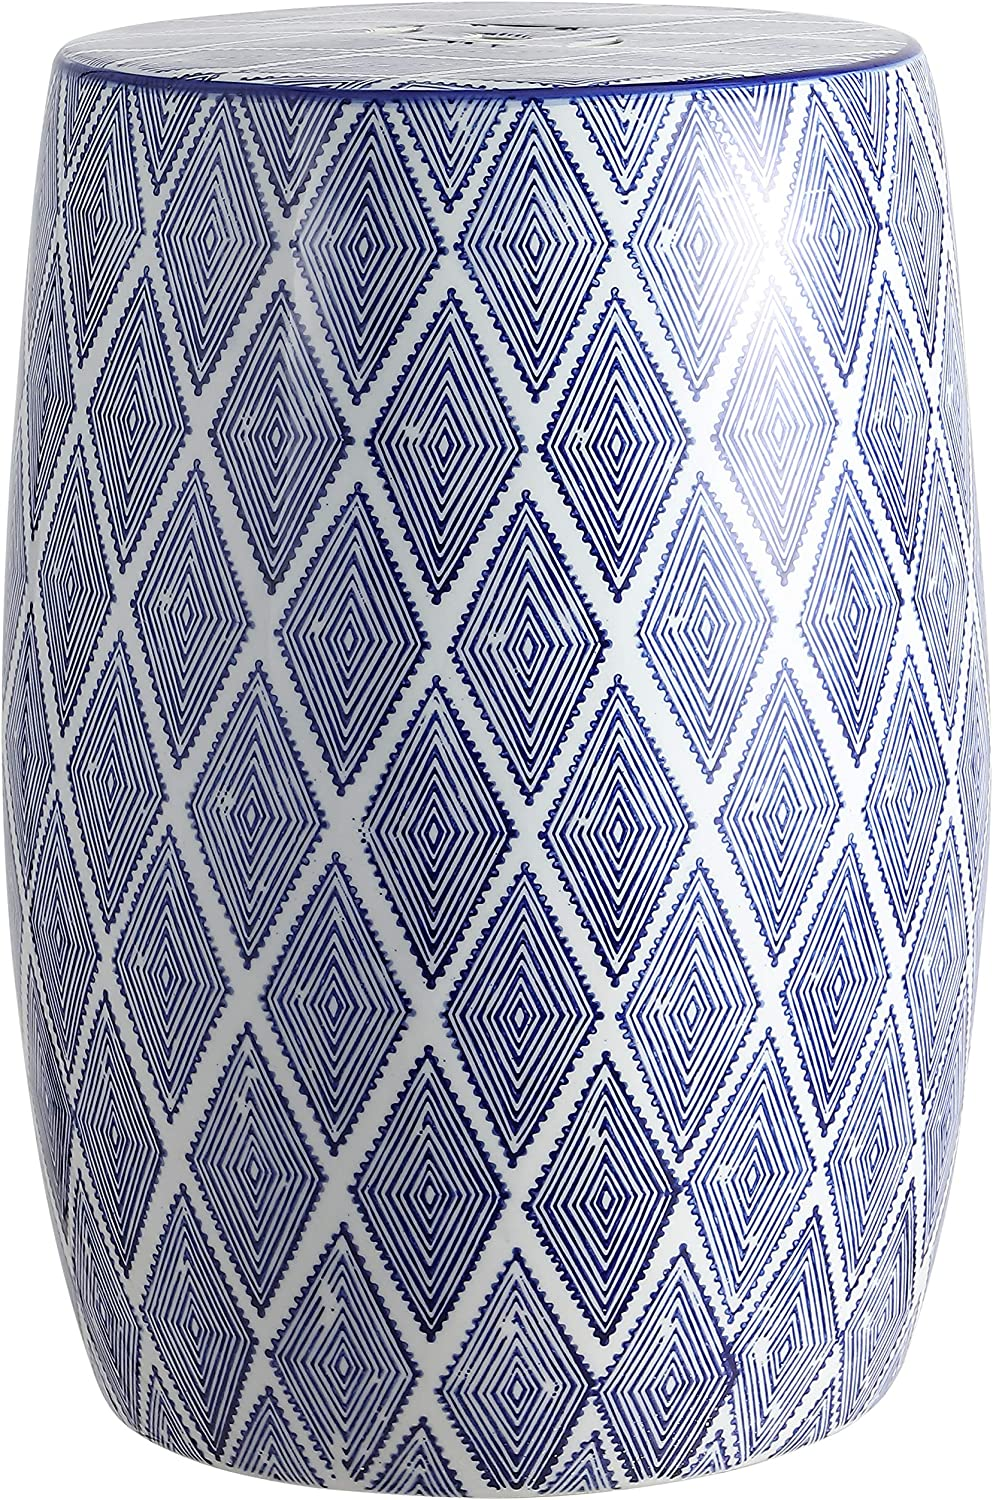 "Jonathan Y TBL1019A Moroccan Diamonds 18"" Ceramic Drum Garden Stool, Blue/White"